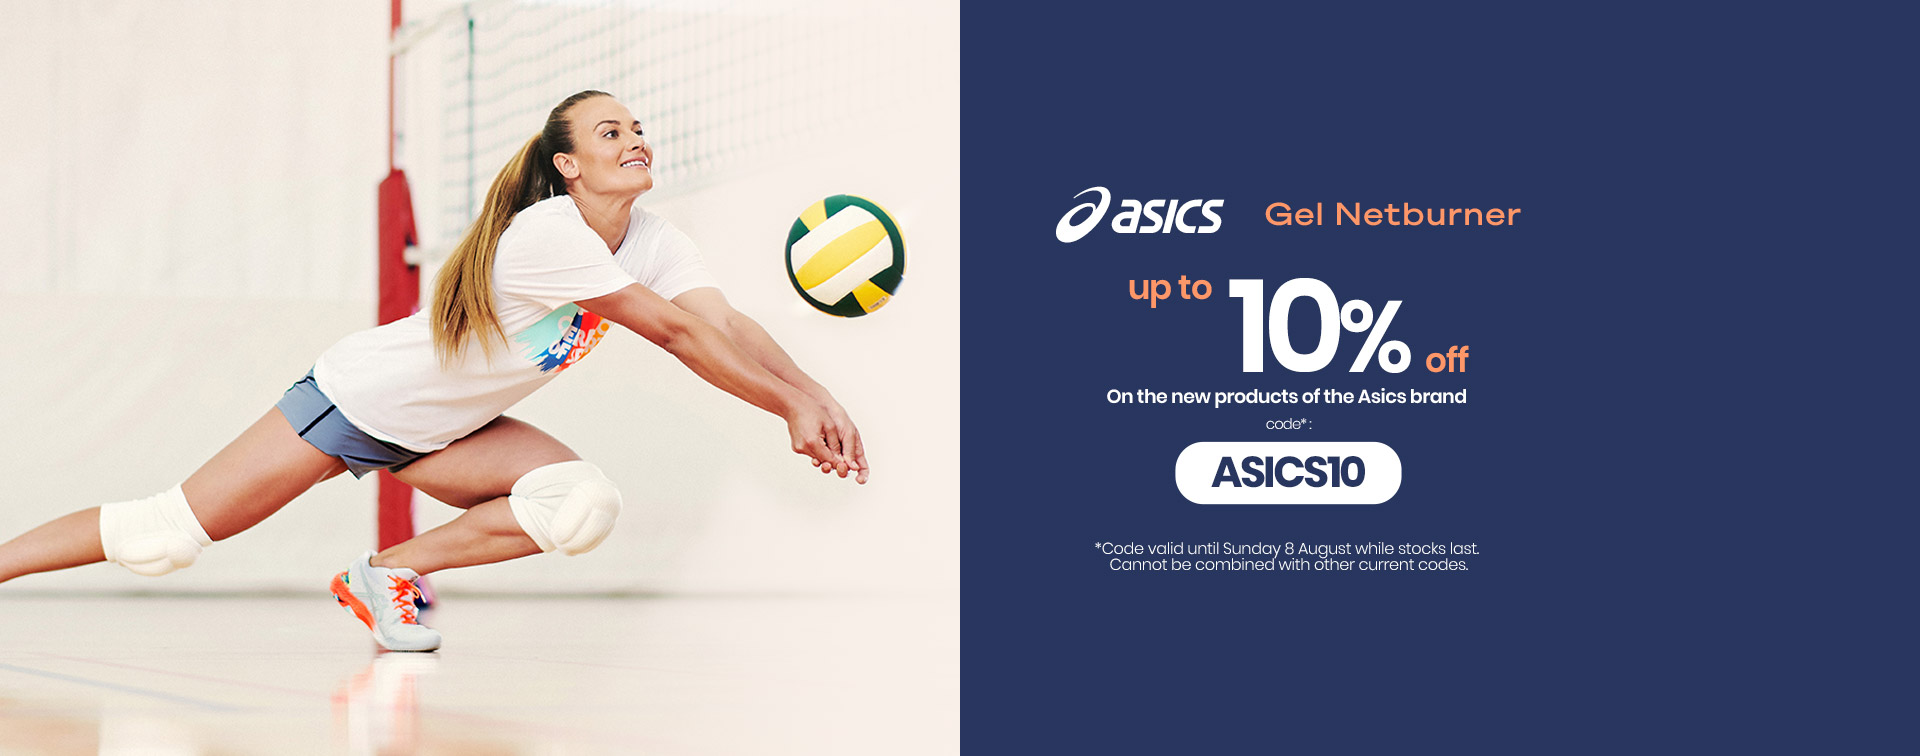 Asics - The best of the volleyball brand